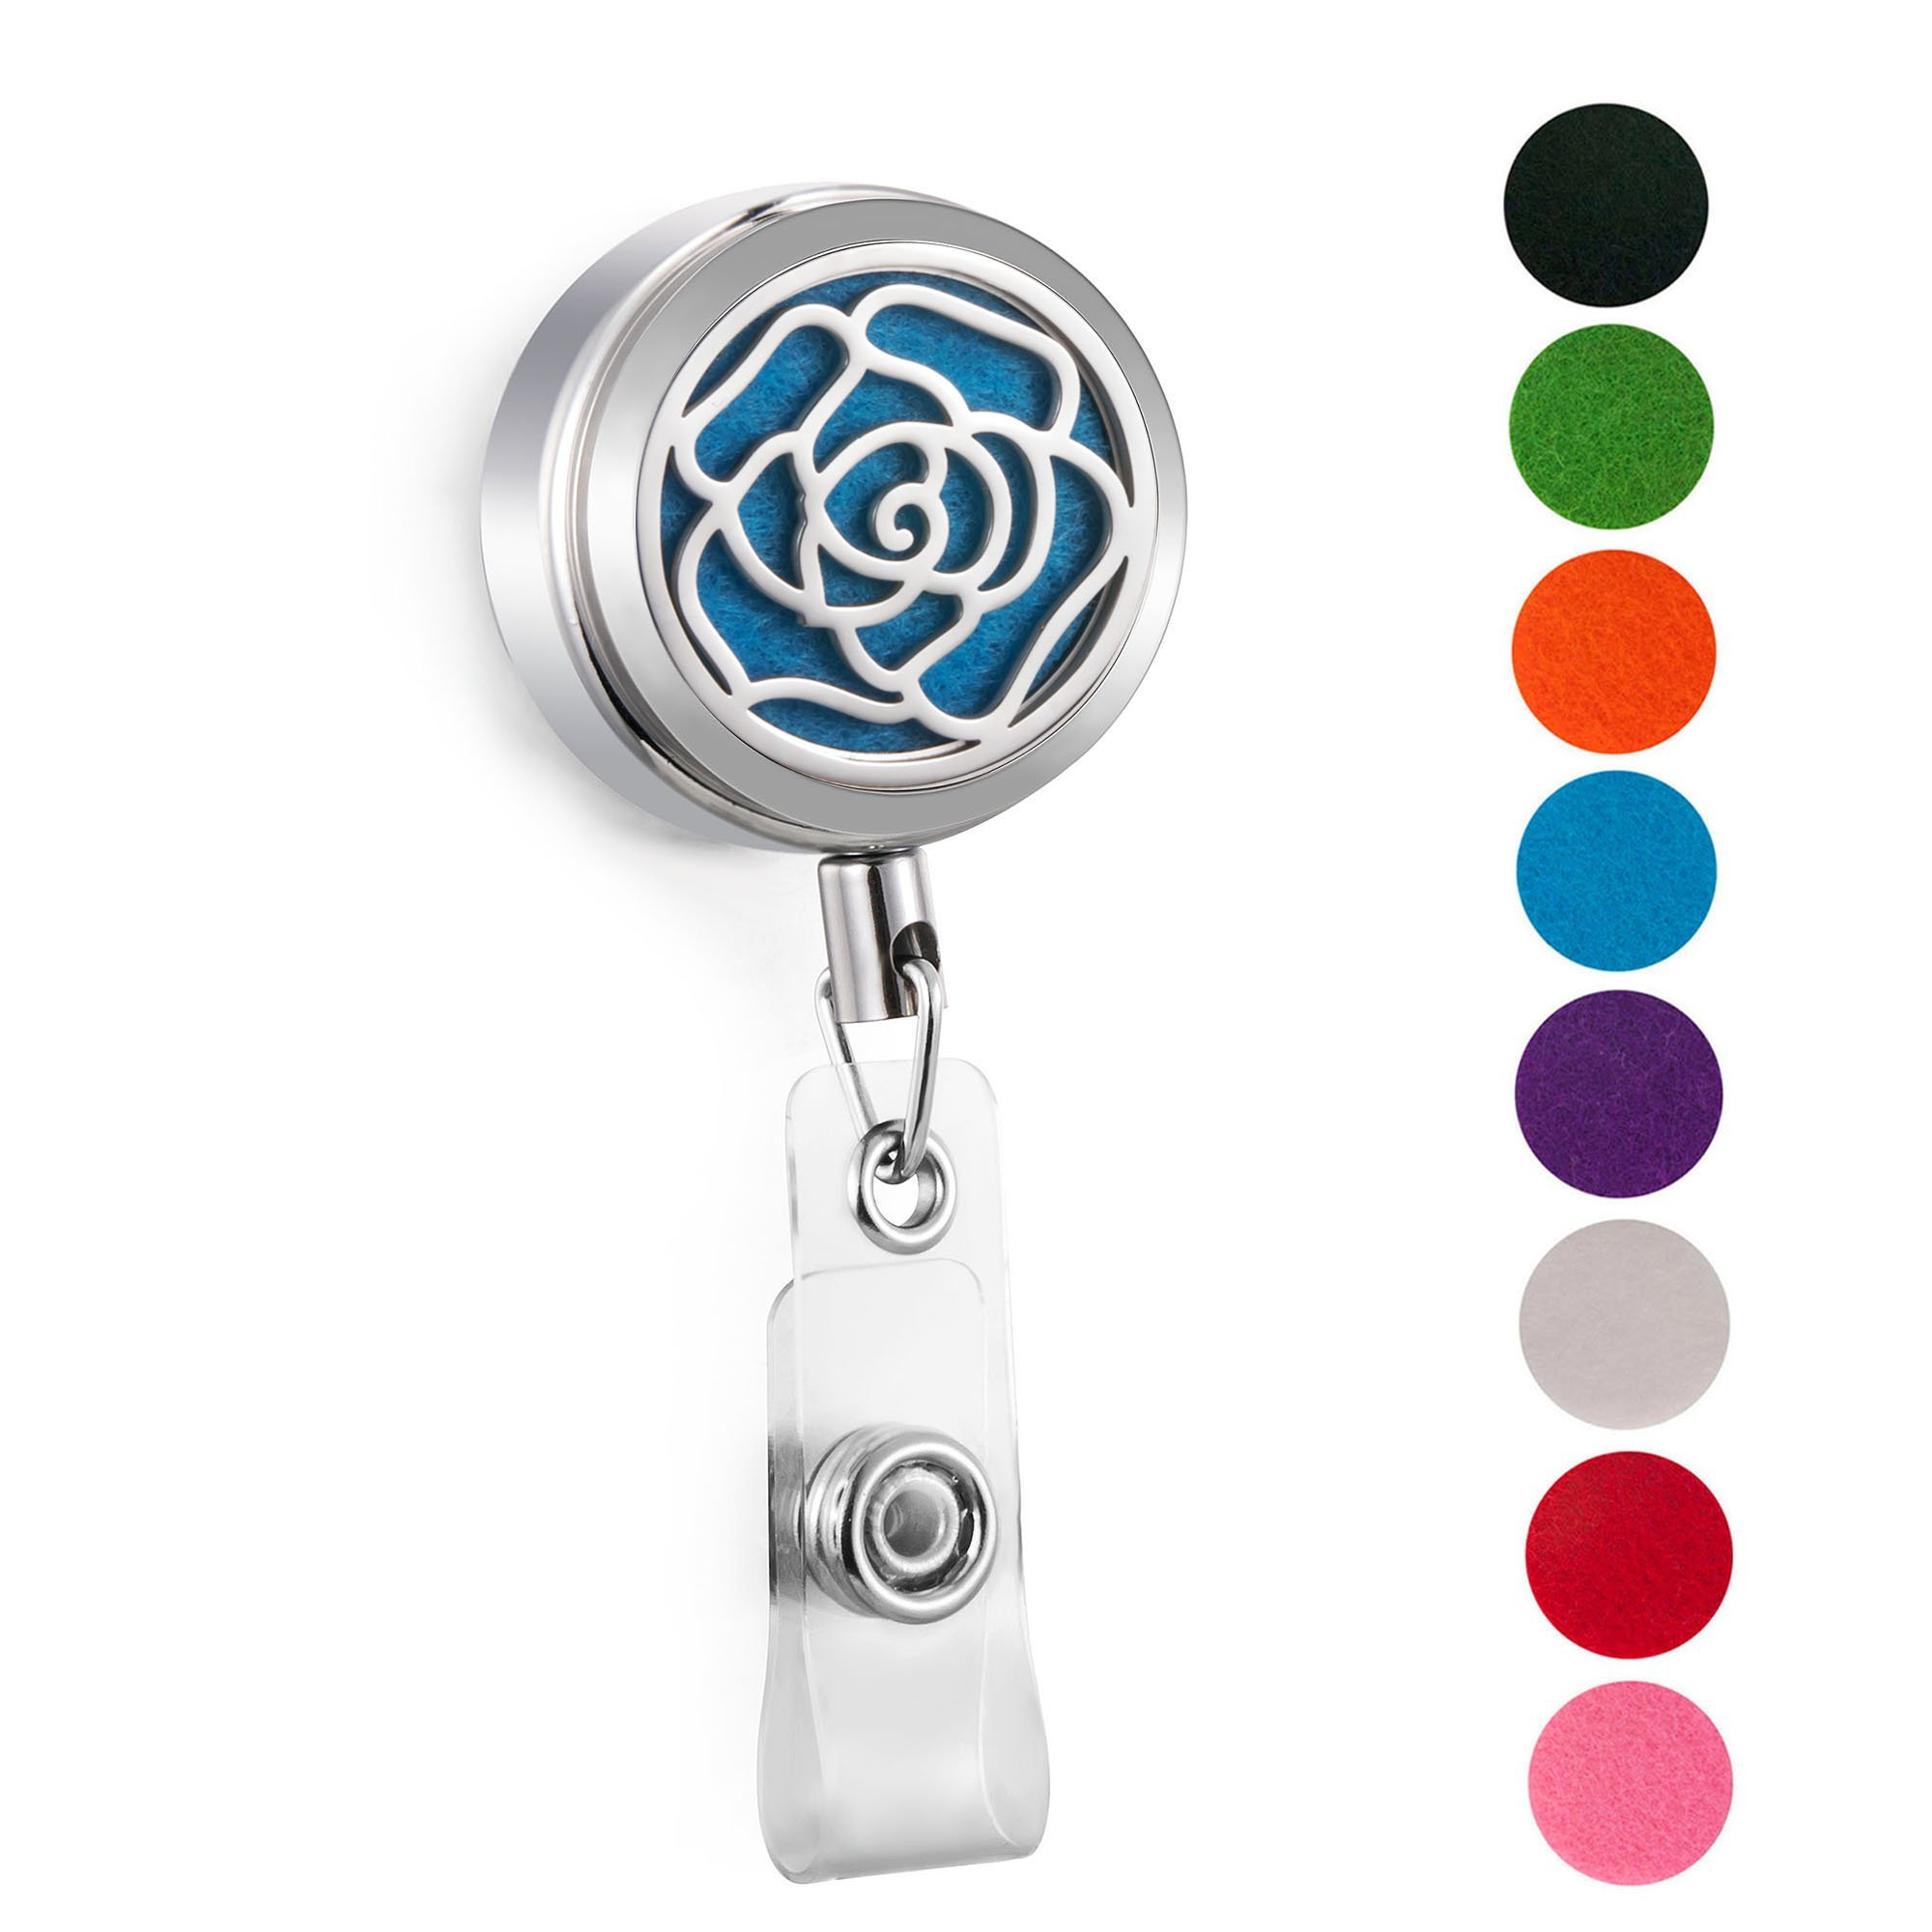 CAPTTE Aromatherapy Essential Oil Badge Diffuser for Nurse Wear-Resisting and Retractable Badge Holder Reel Clip On Id Card Holders with Rose